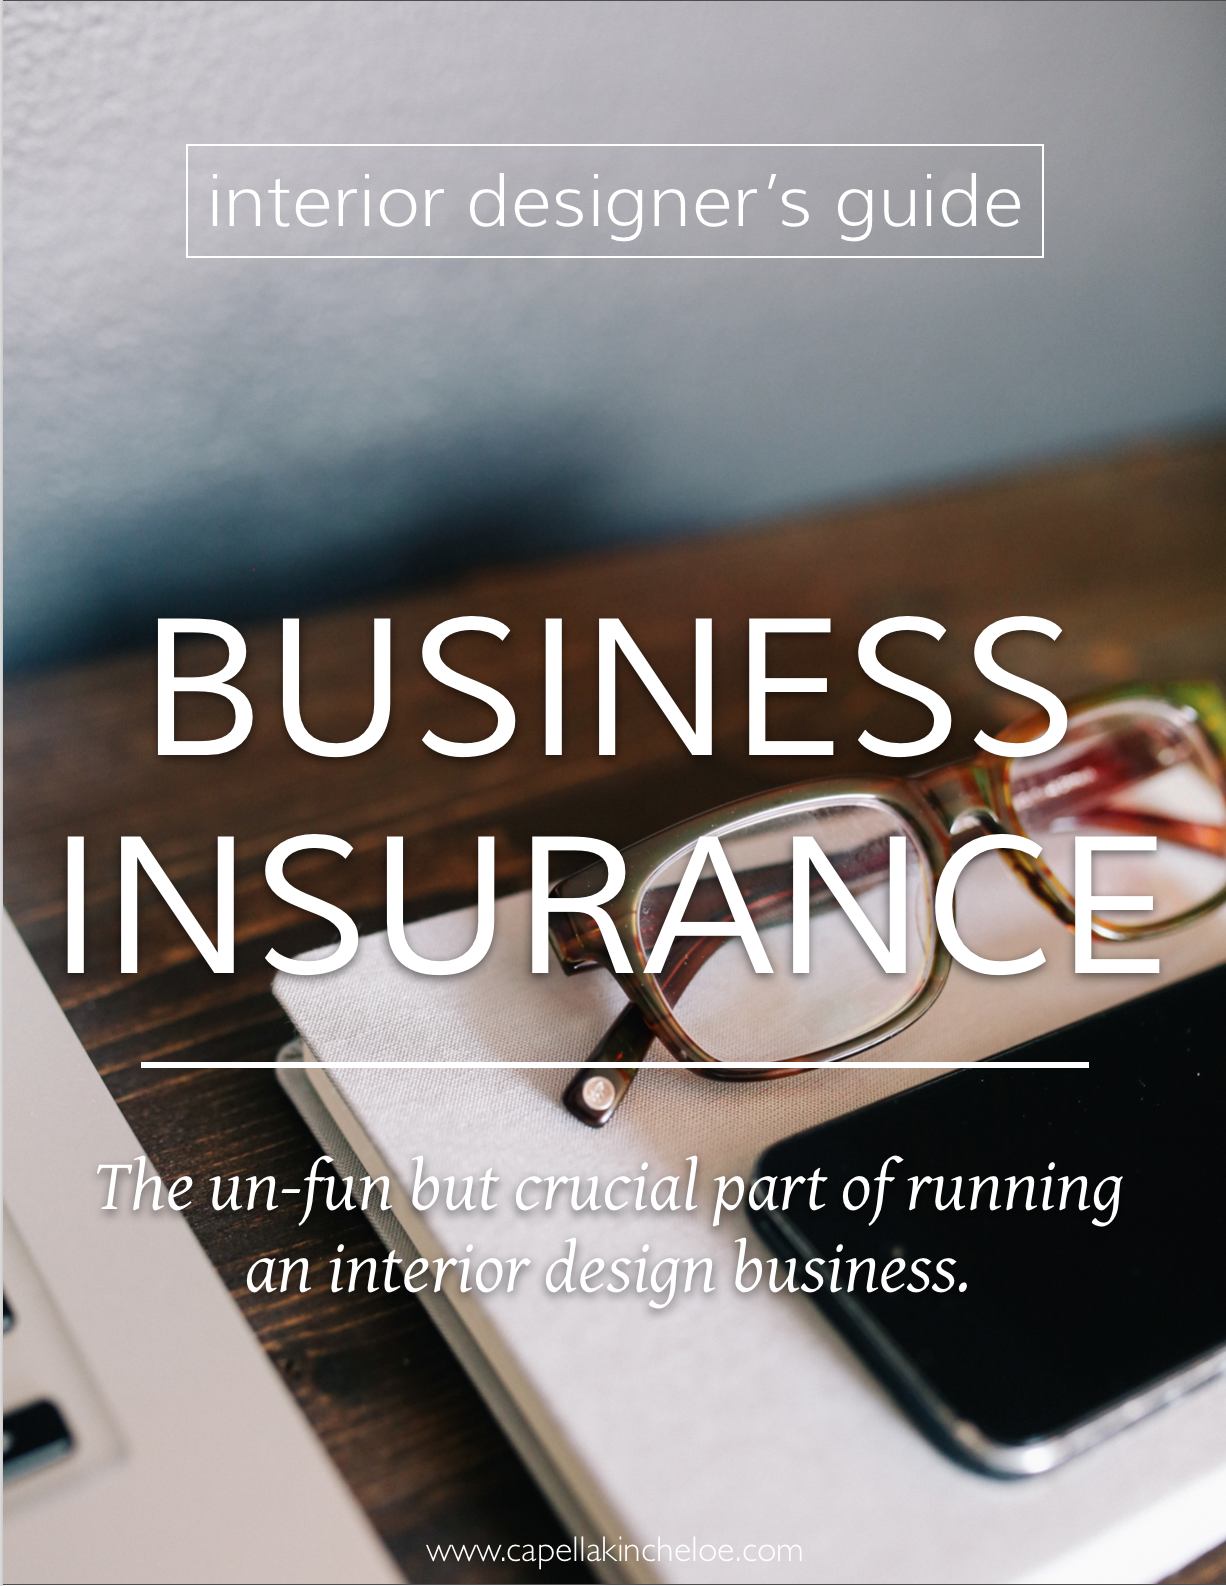 No interior designer likes thinking about insurance. However, it is one of the most important parts of running your interior design business. You can't do business without it, luckily I've put together a list of insurance that may be useful to your business.